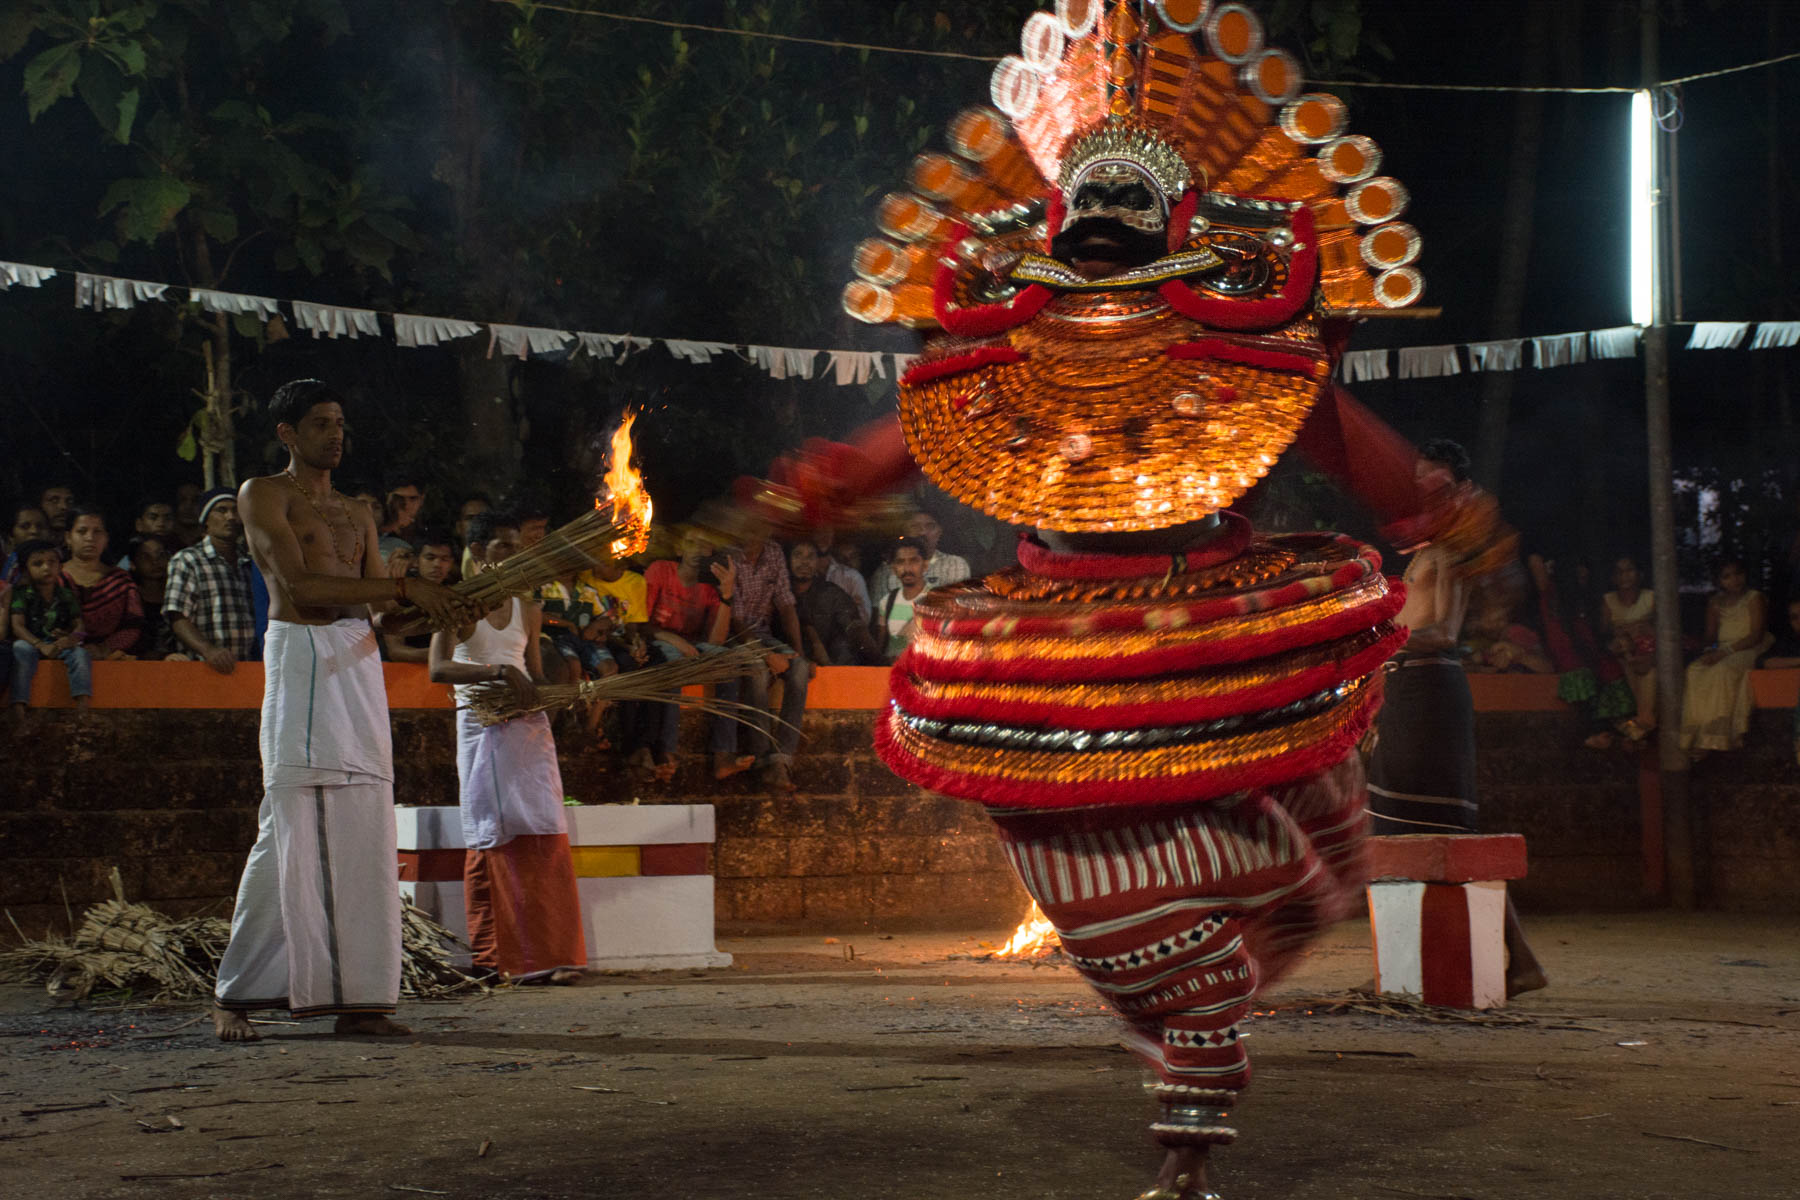 Spinning Theyyam dancer - Where to see Theyyam in Kerala, India - Lost With Purpose